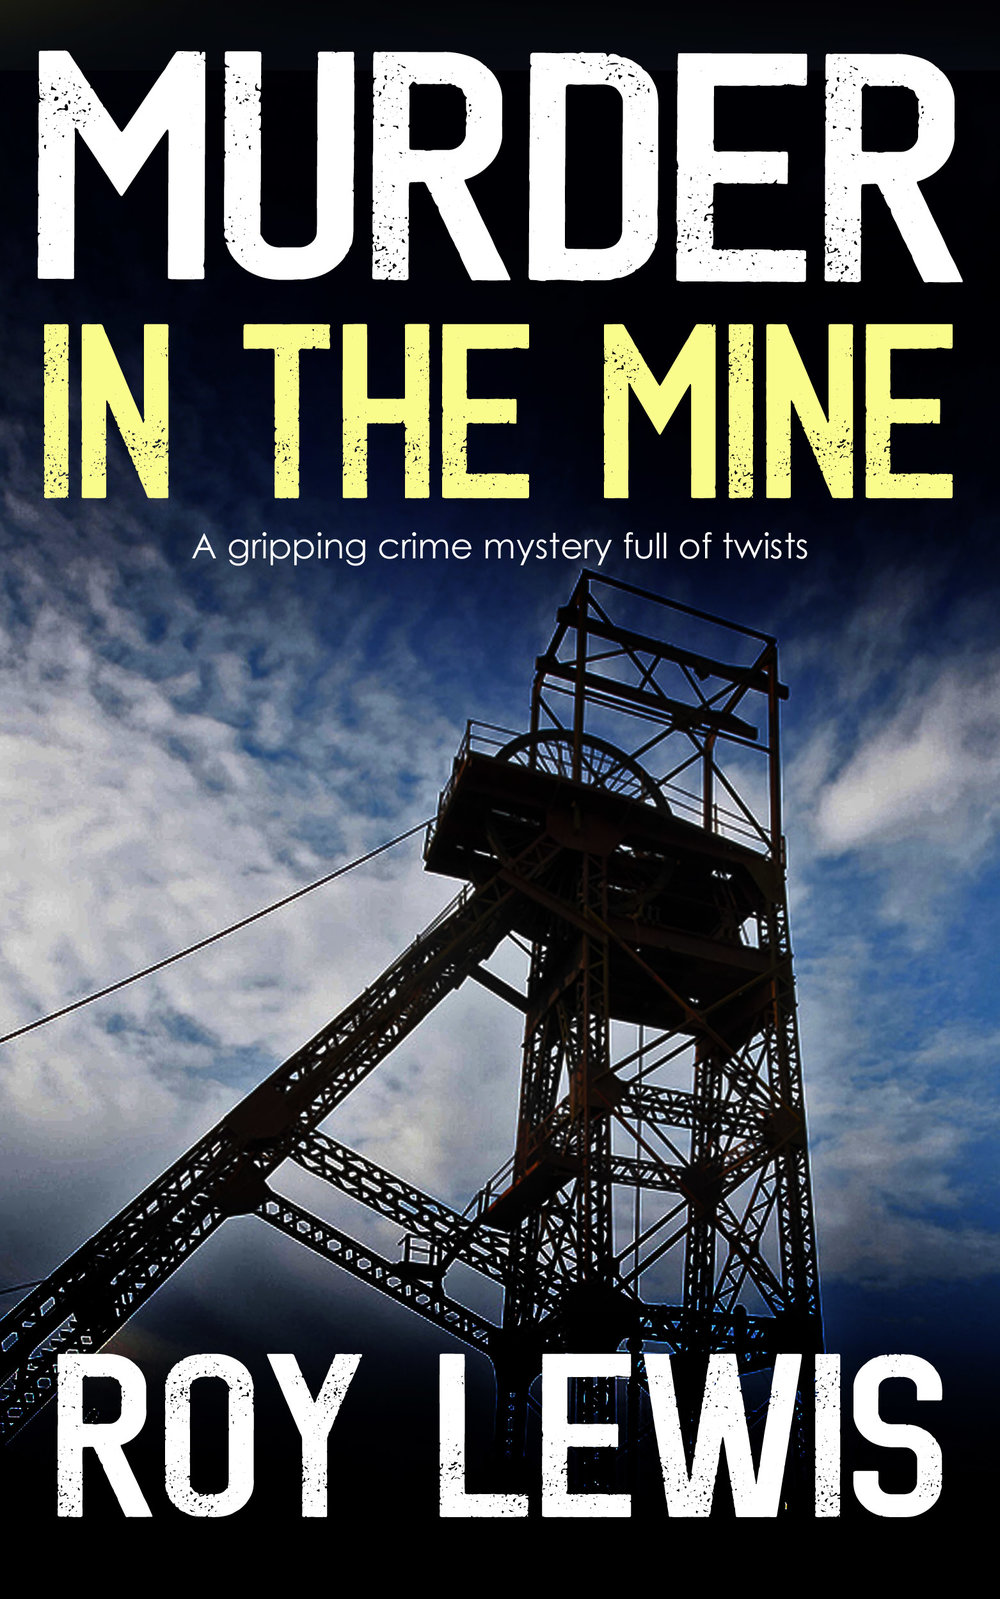 MURDER IN THE MINE2.jpg